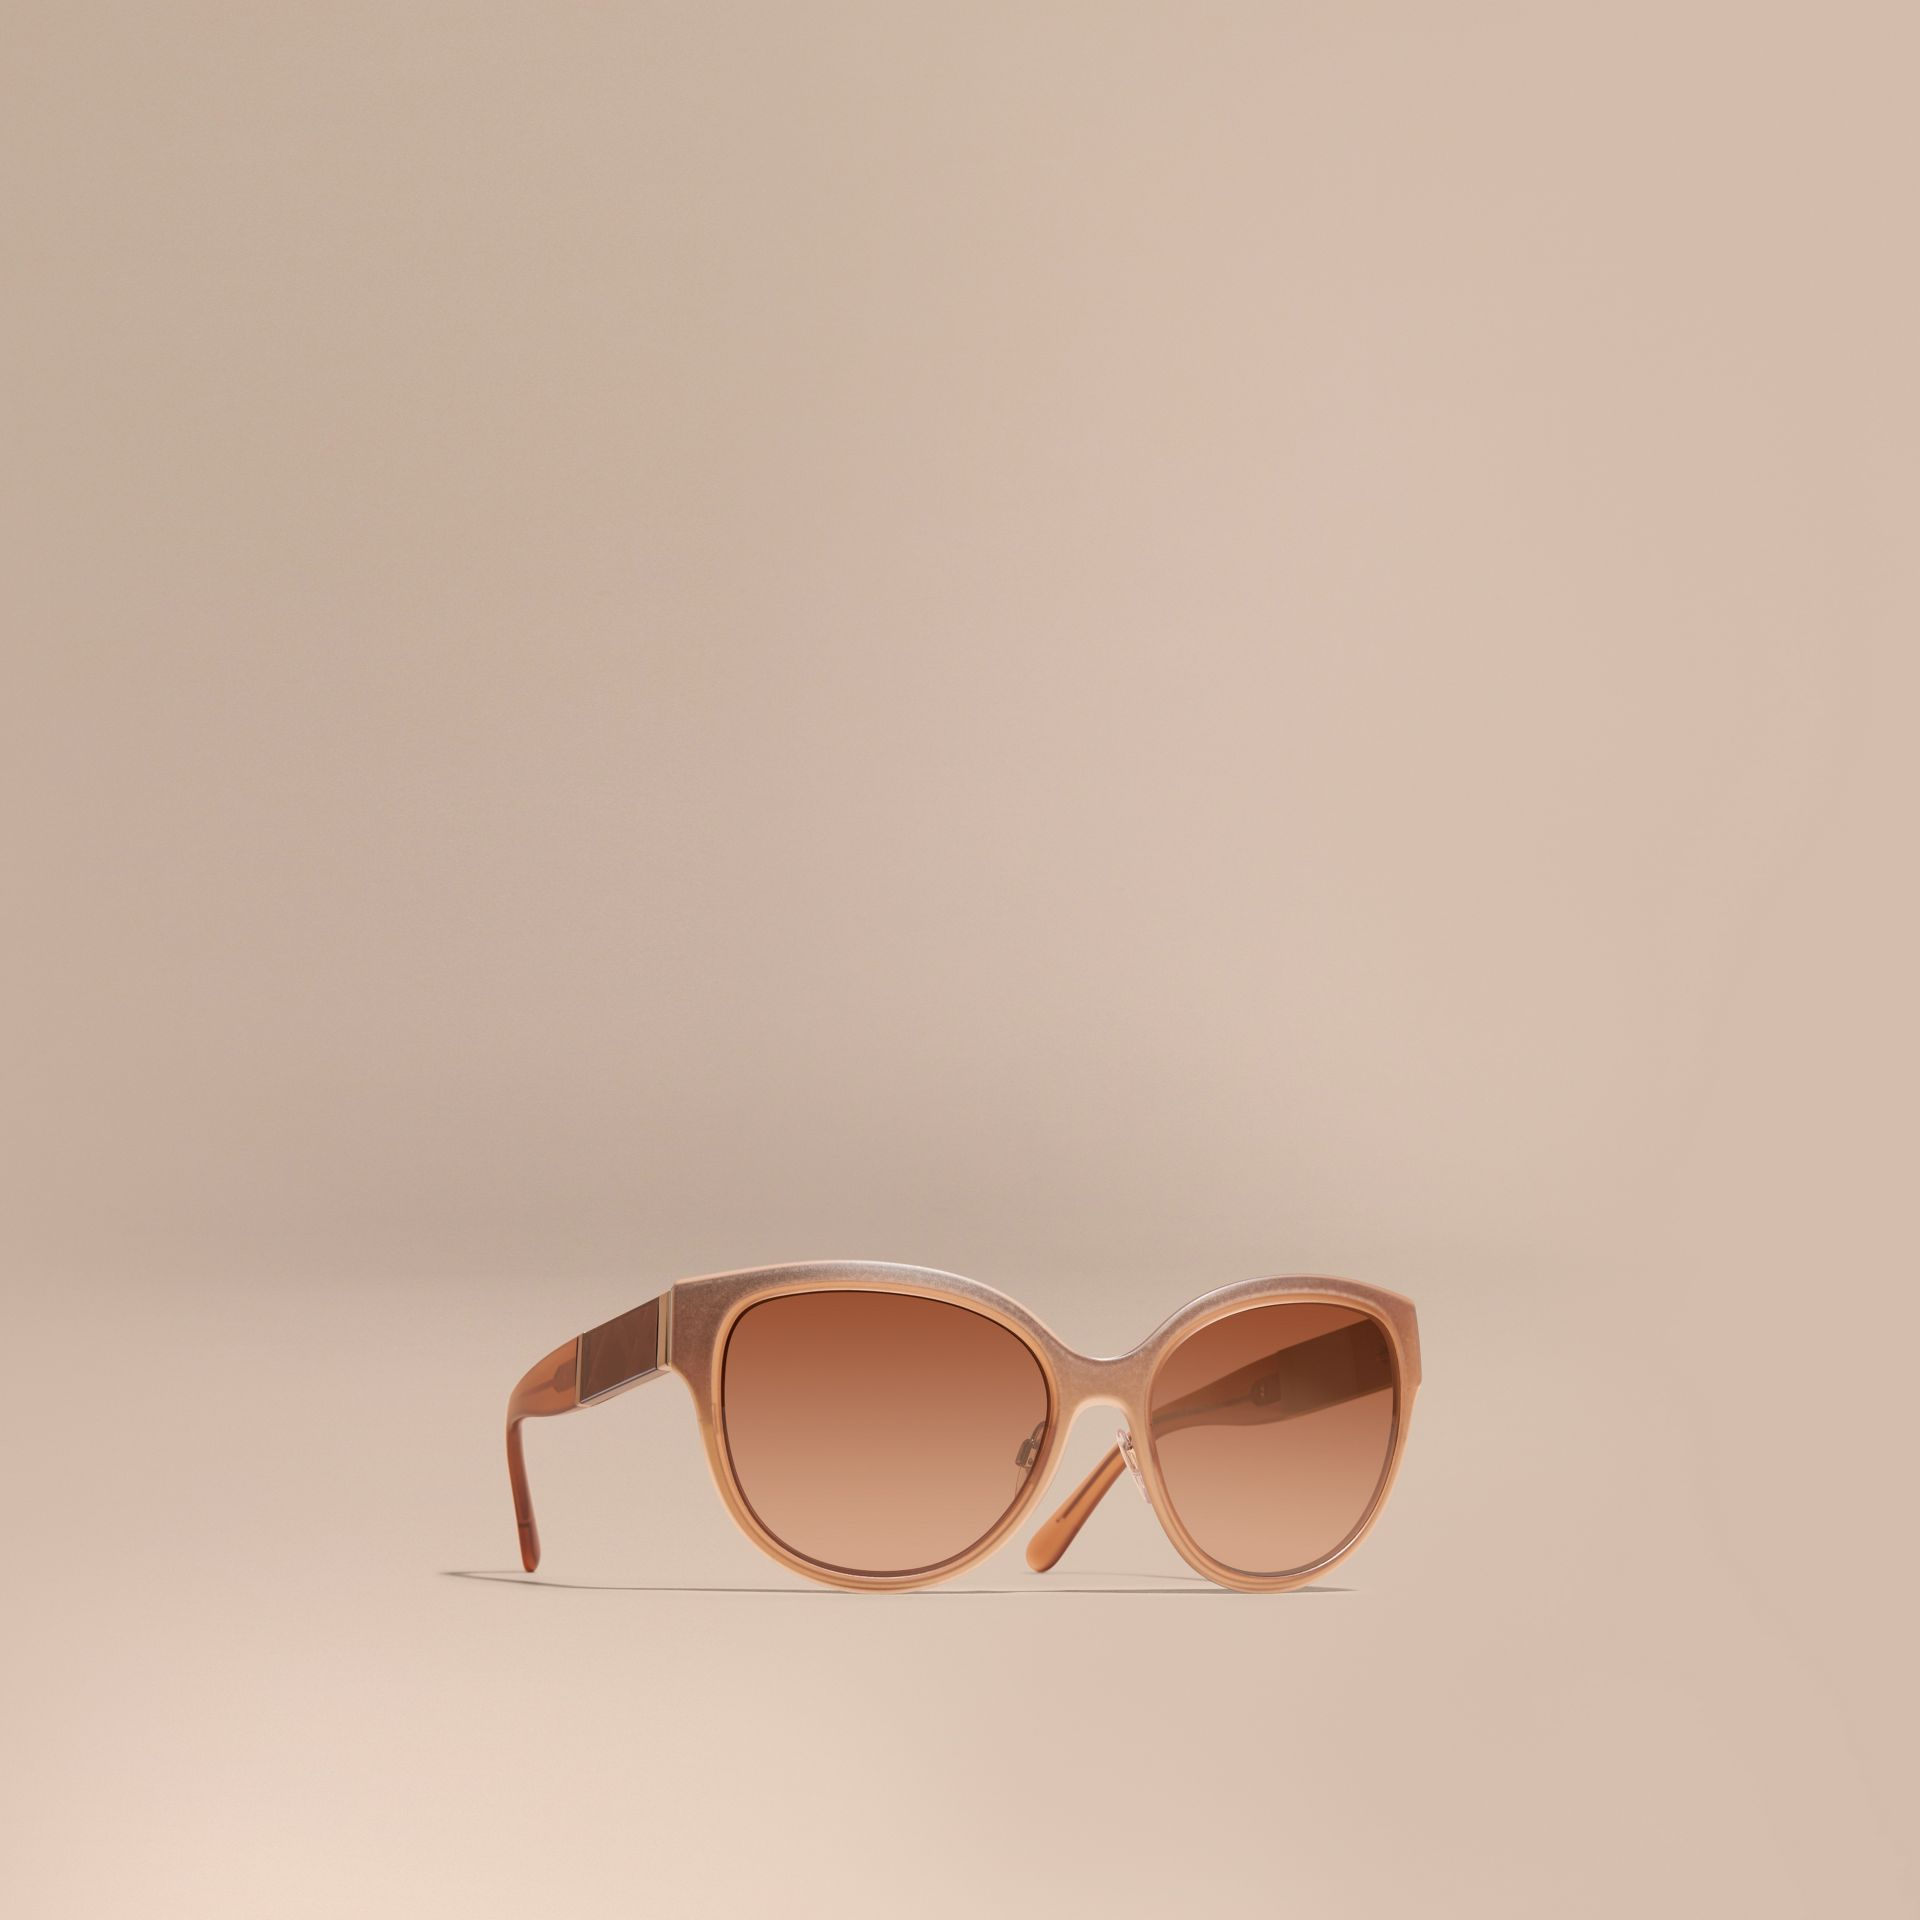 Light wood Check Detail Round Cat-eye Sunglasses Light Wood - gallery image 1